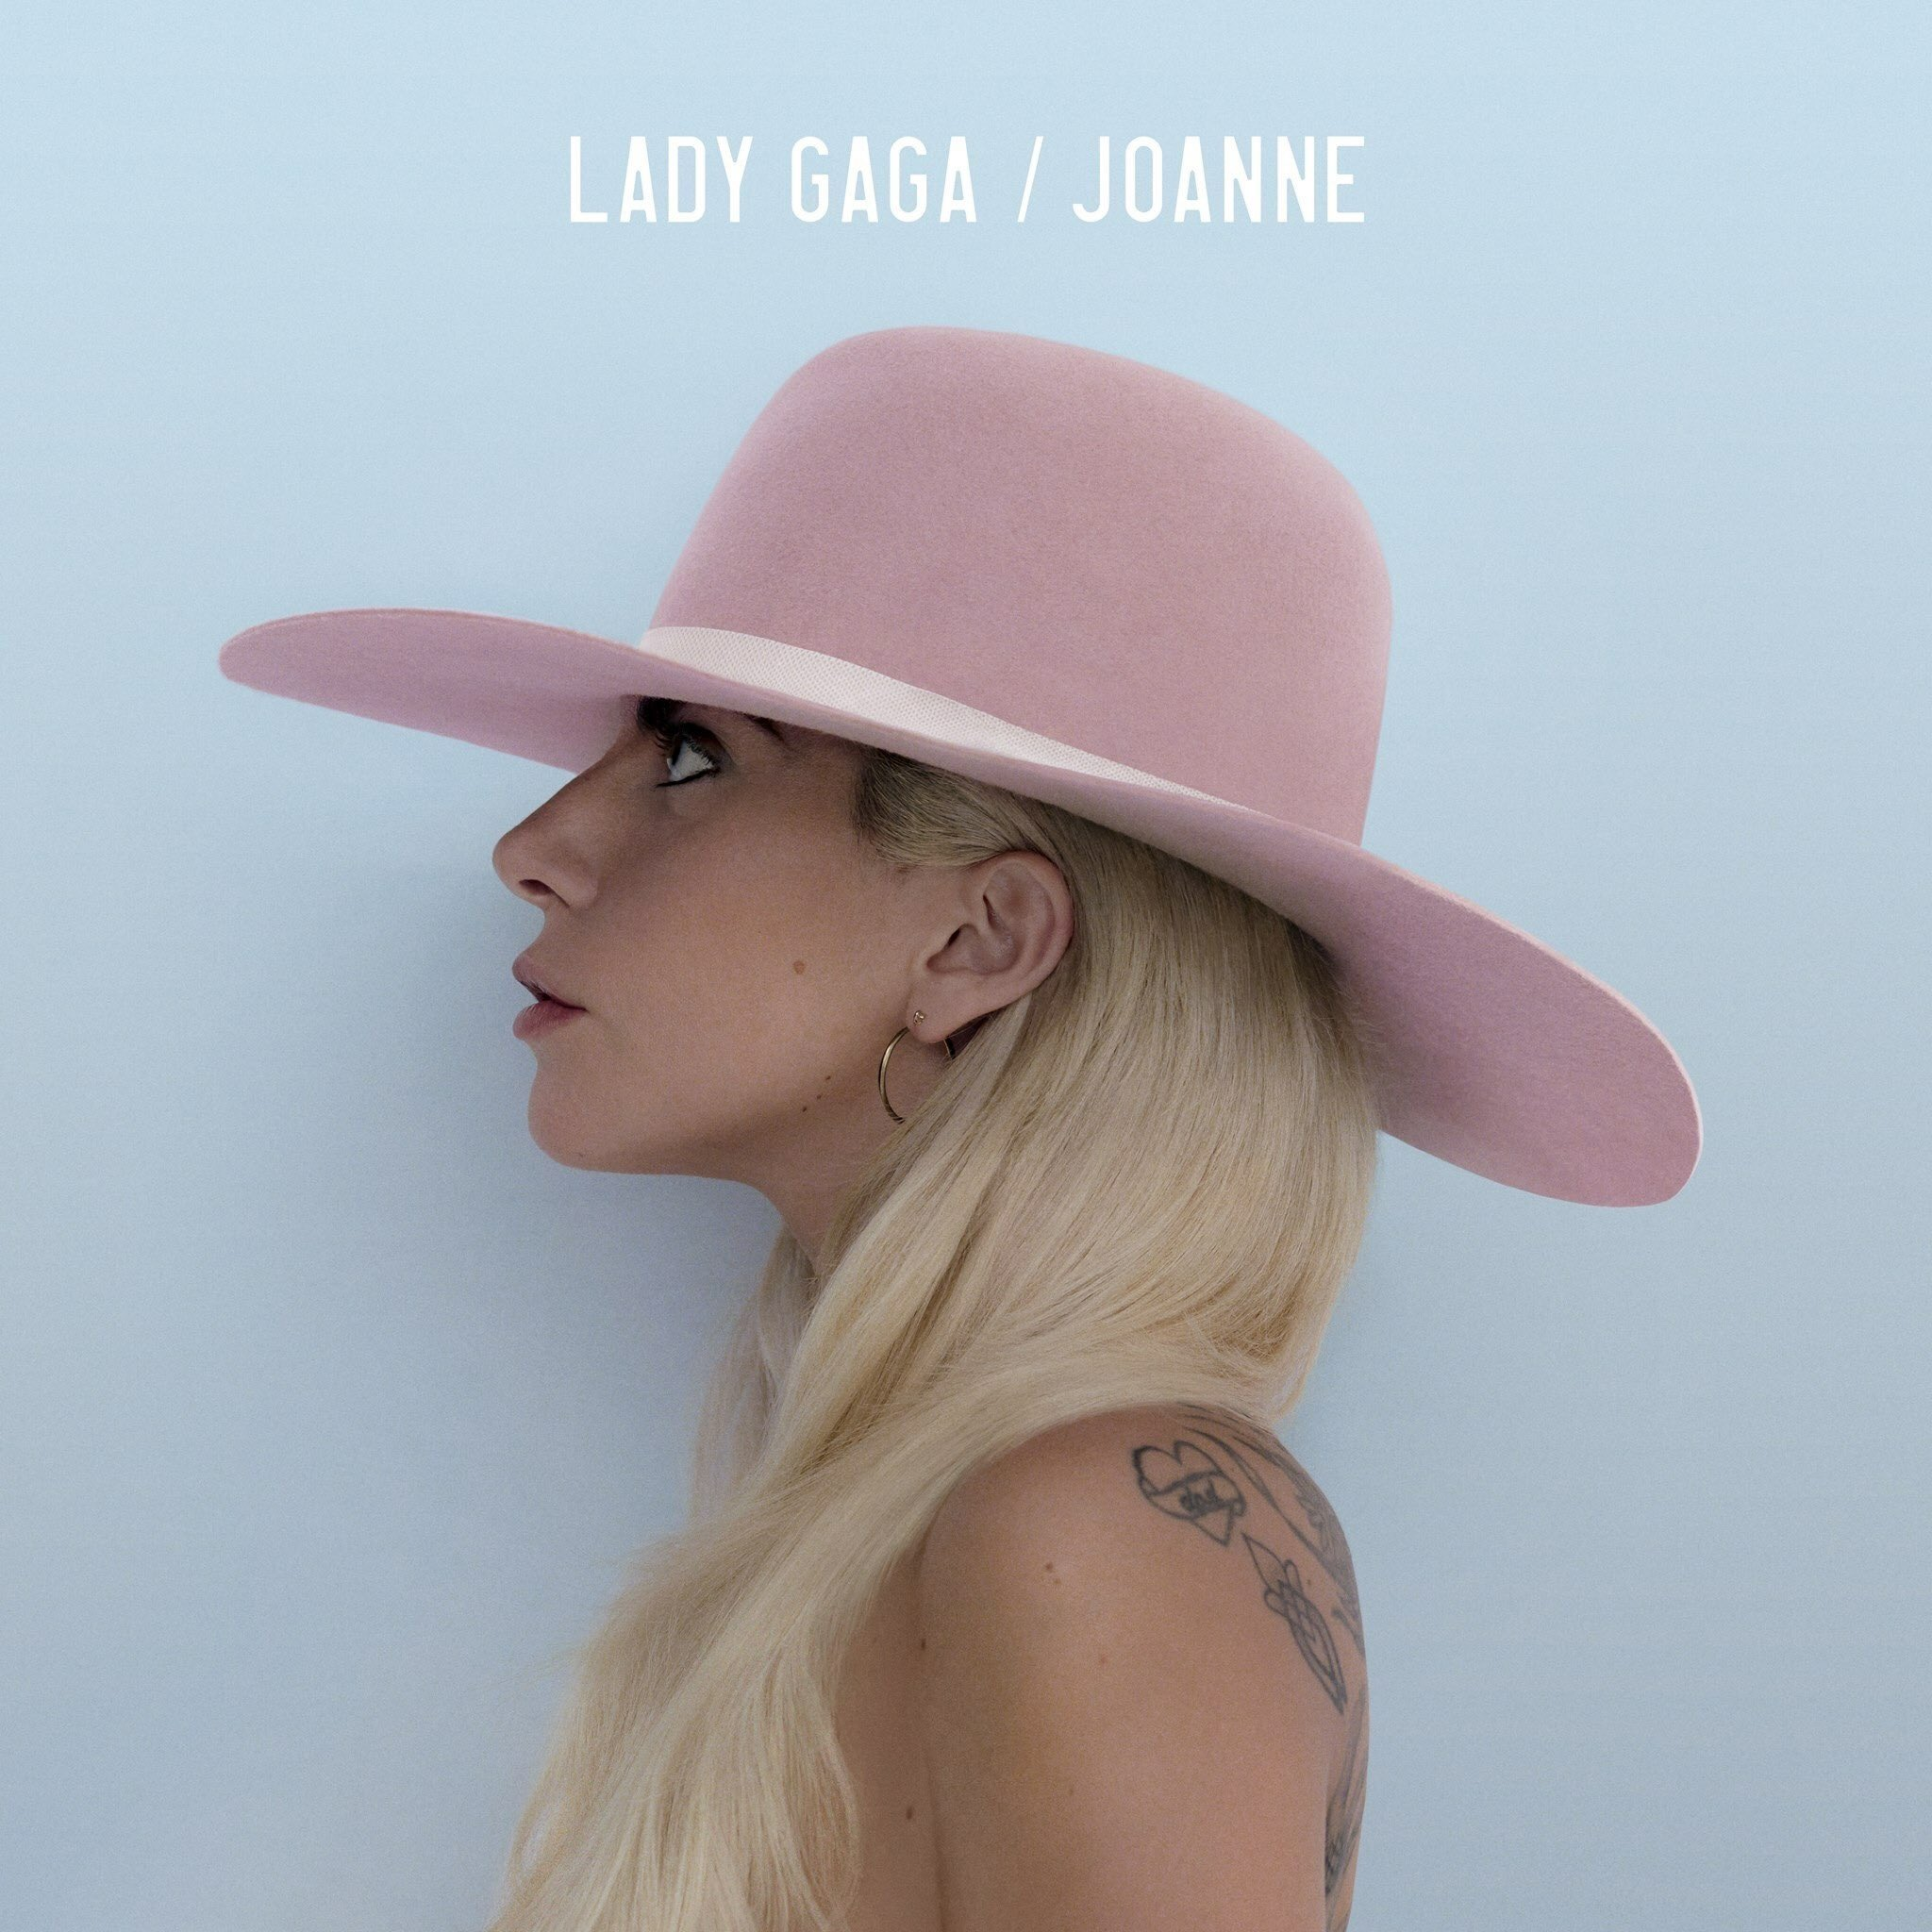 #MillionReasons is on the #1 album from @ladygaga, #JOANNE. Get the track now: https://t.co/BVMghW6jNV #AMAs https://t.co/AyEz6bxJtT